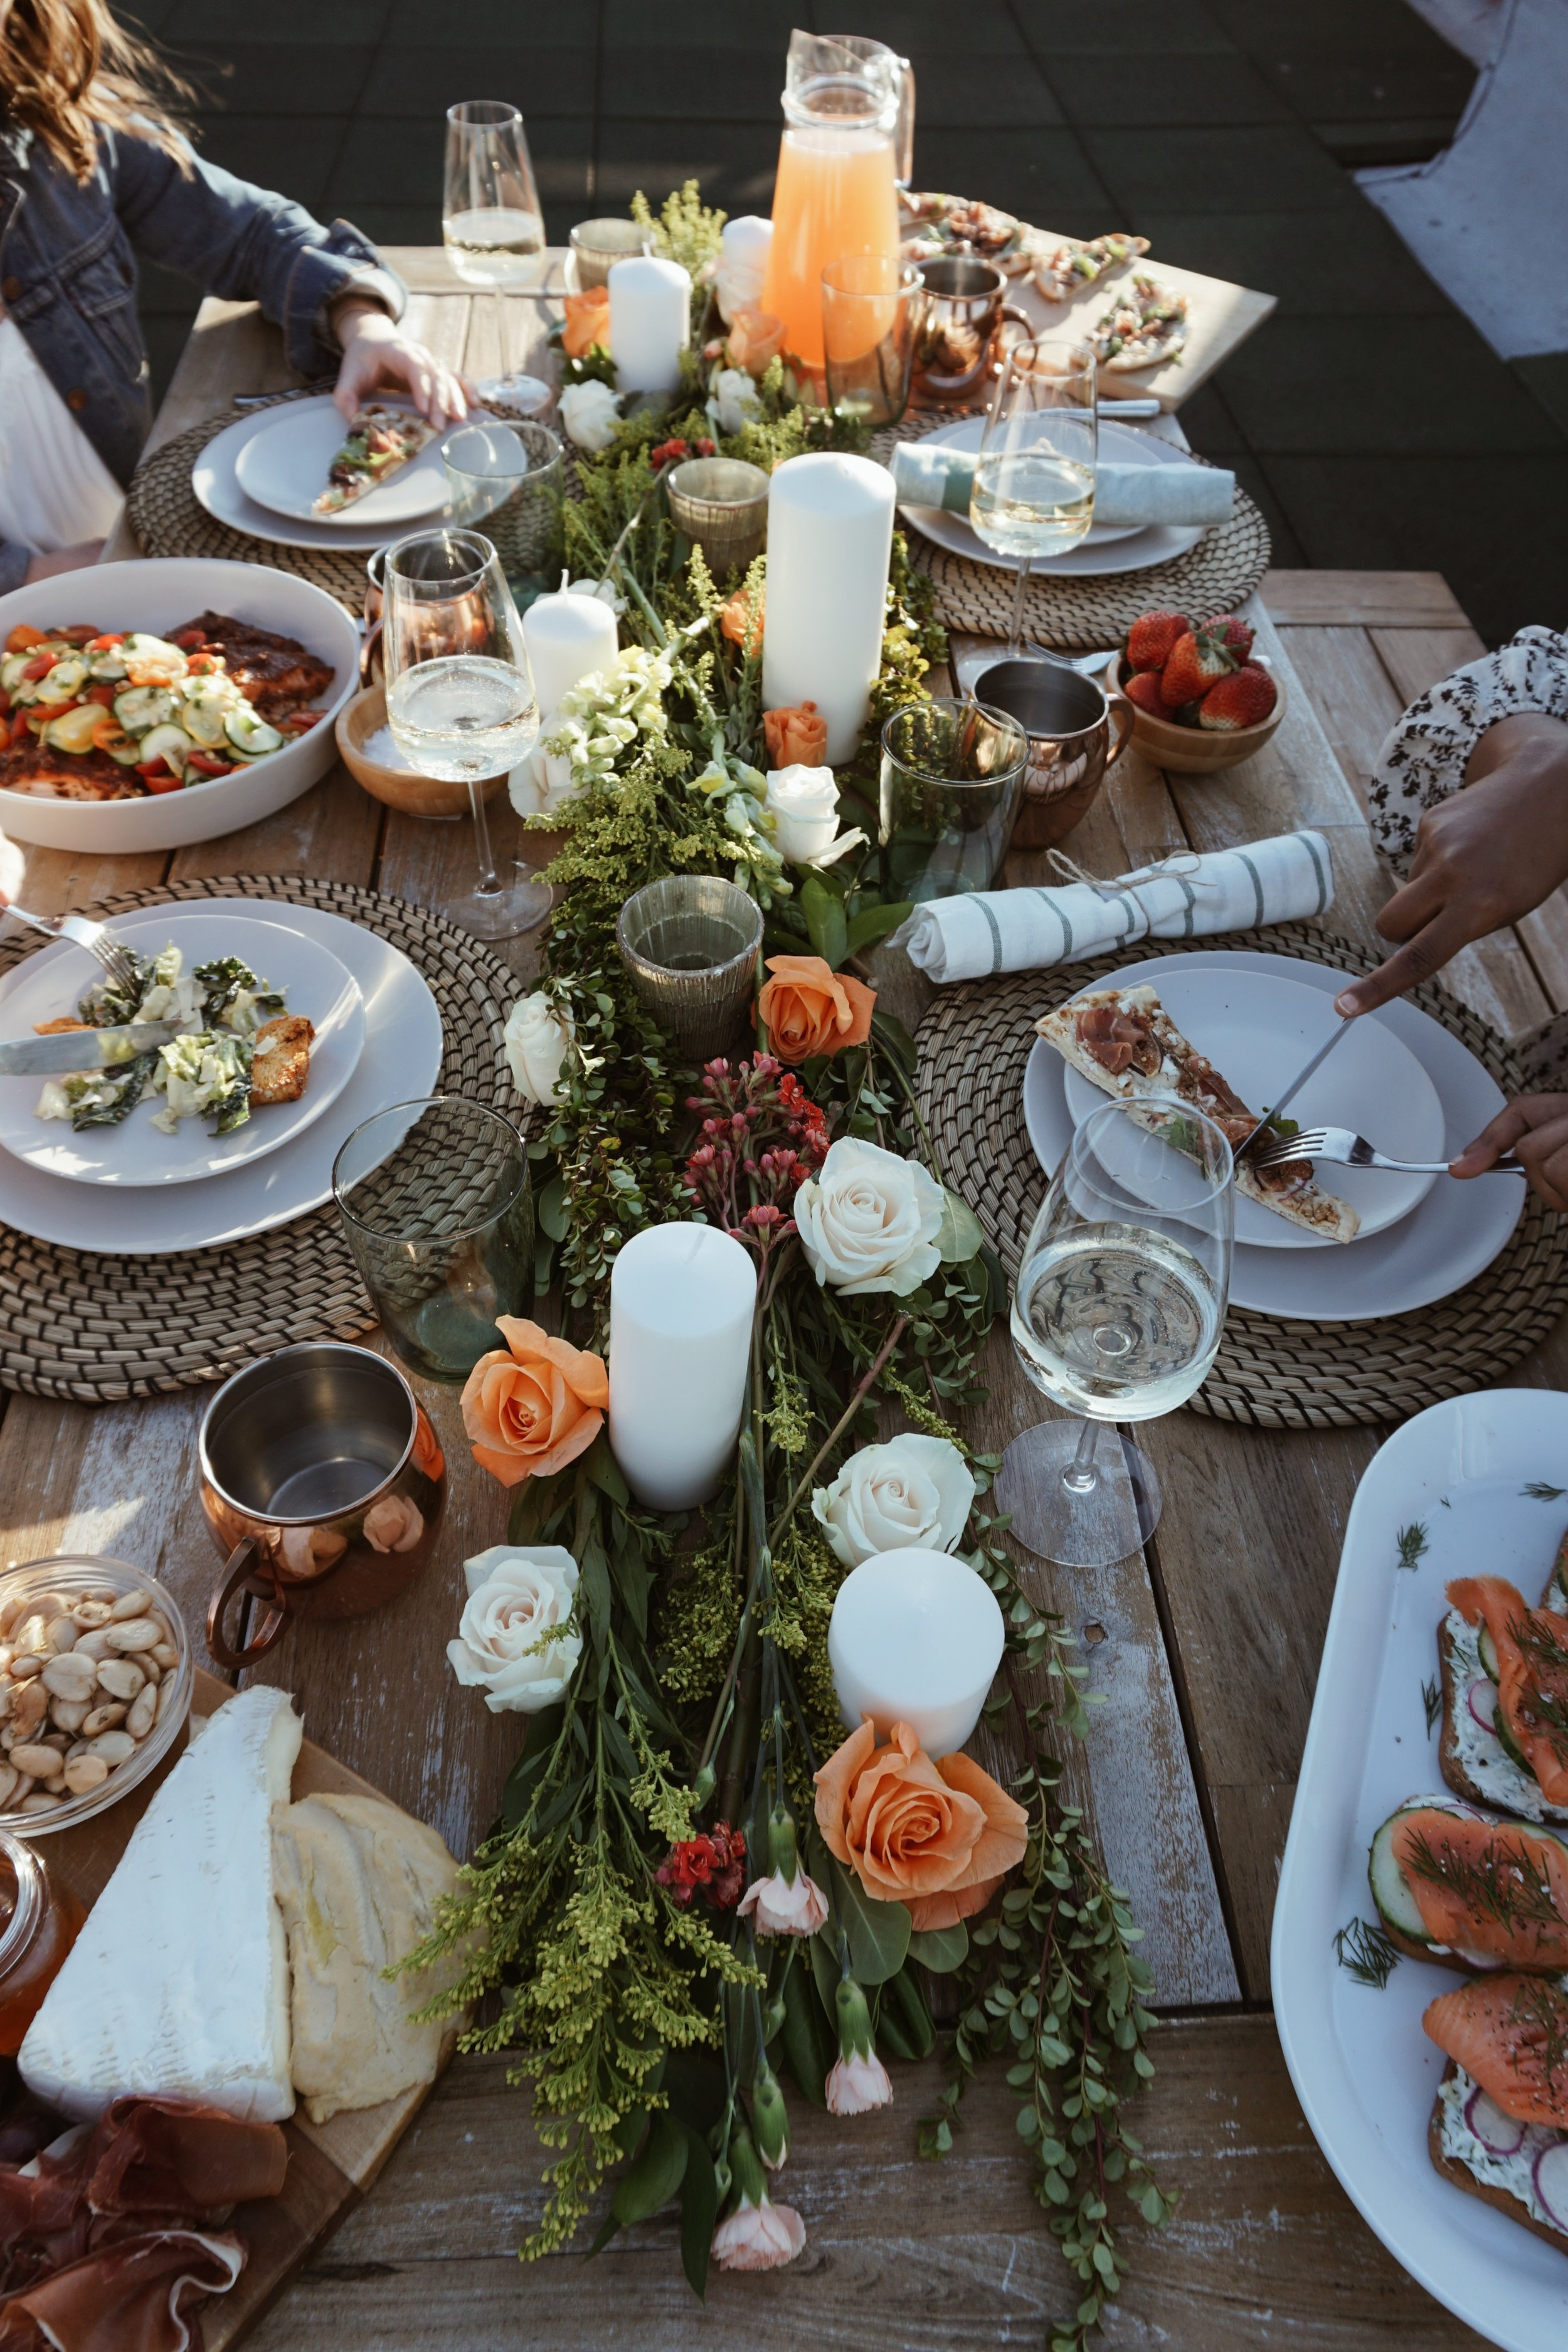 How to host a summer dinner party, outdoor summer party, dinner party tips, boho dinner party, ikea table setting, interior design blogger, how to host an event, beautiful tablescape, black blogger, How to style a table, IKEA DISHES, SUmmer party, summer gathering